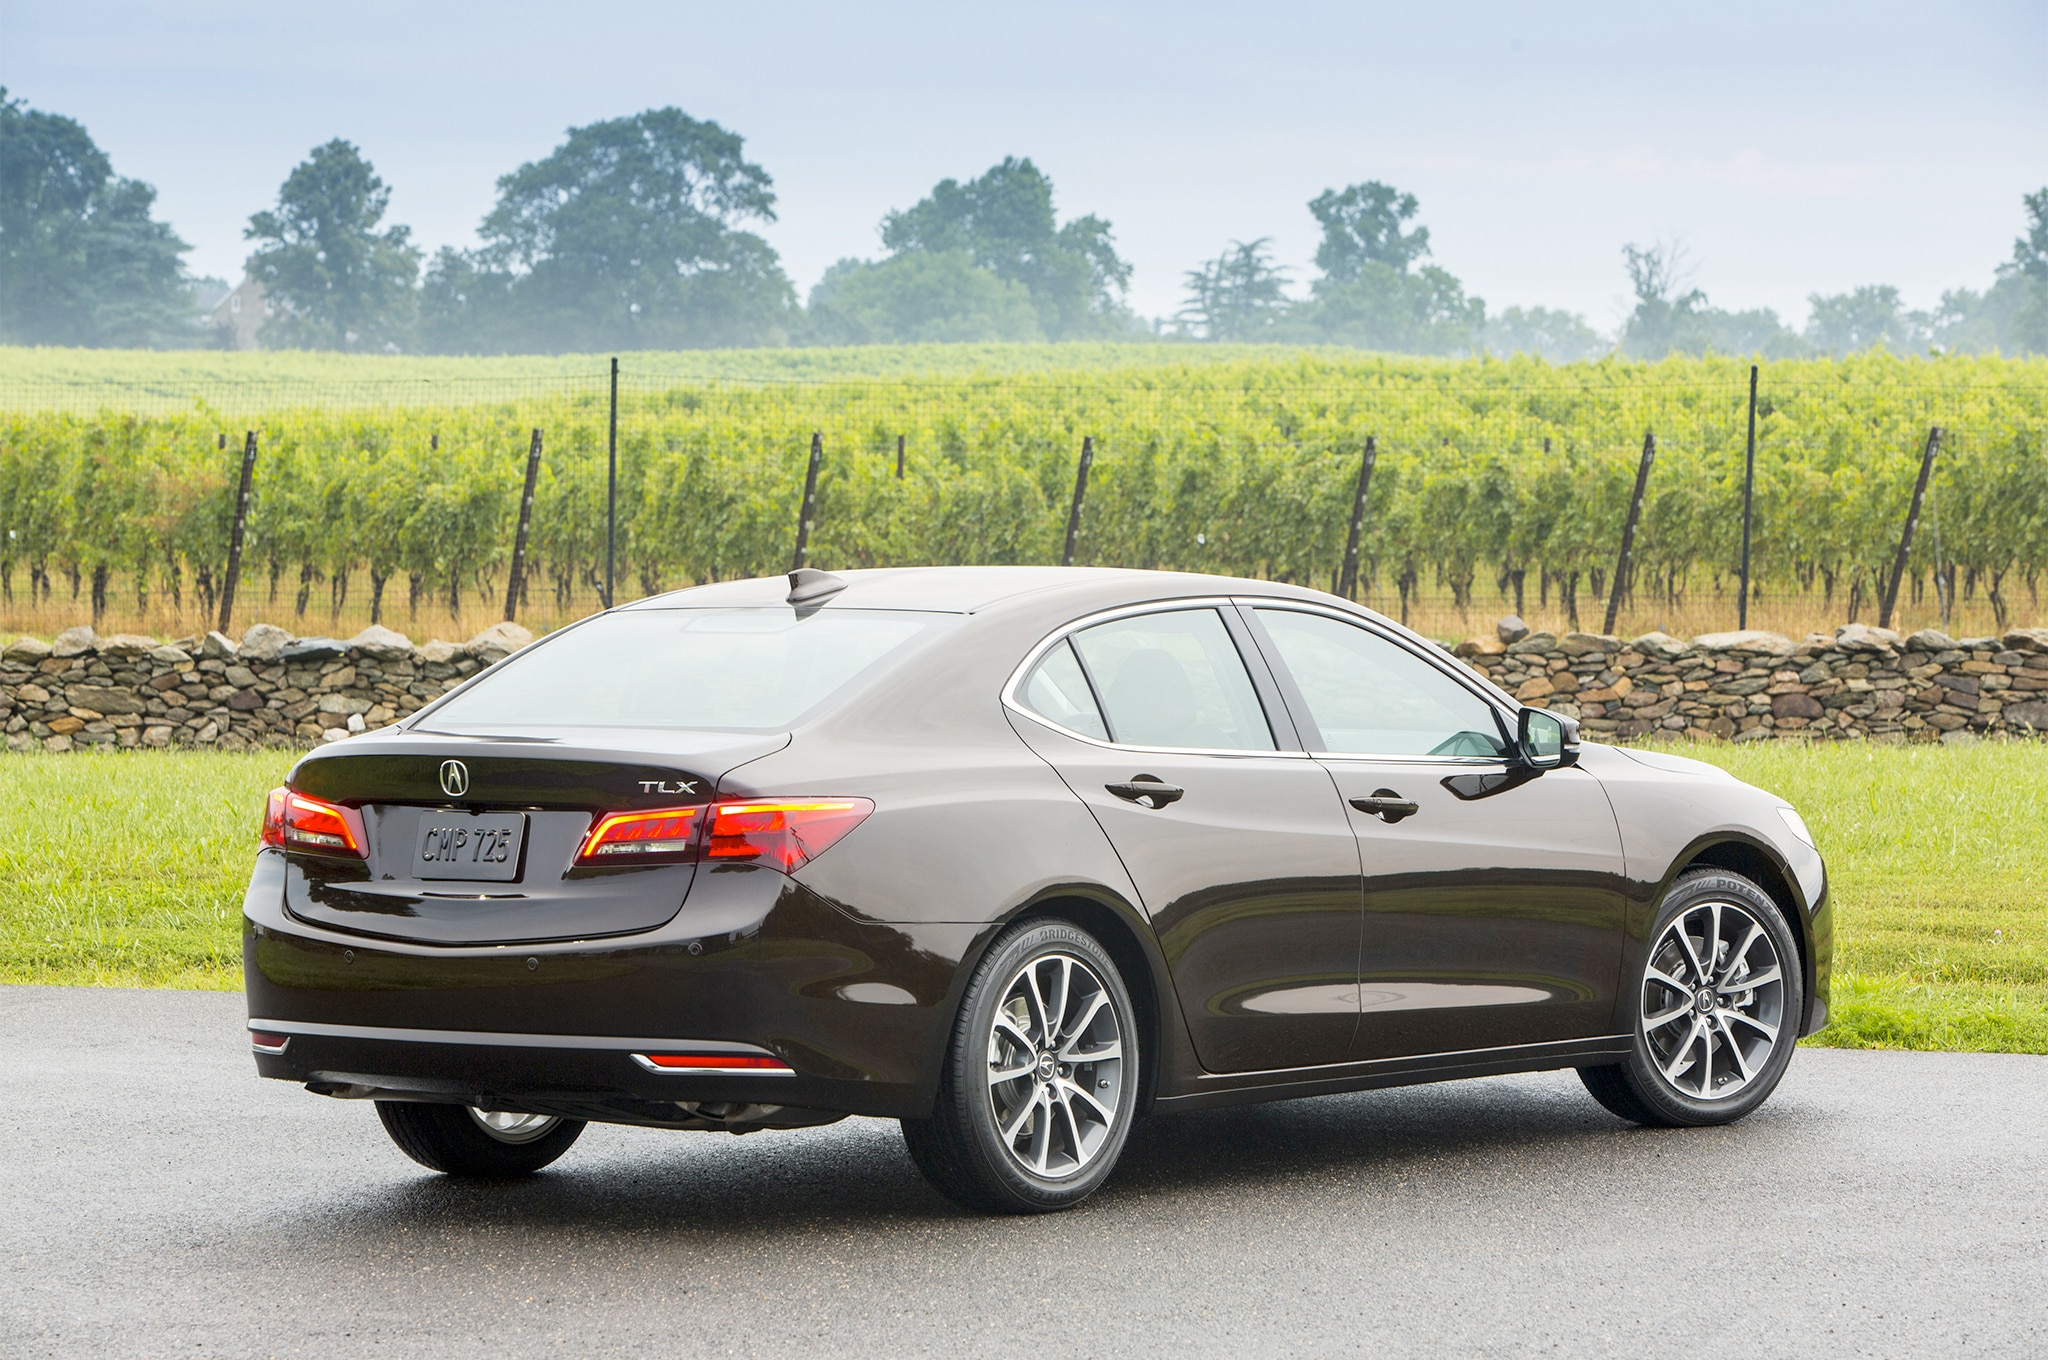 Tlx v6 0 to 60 autos post